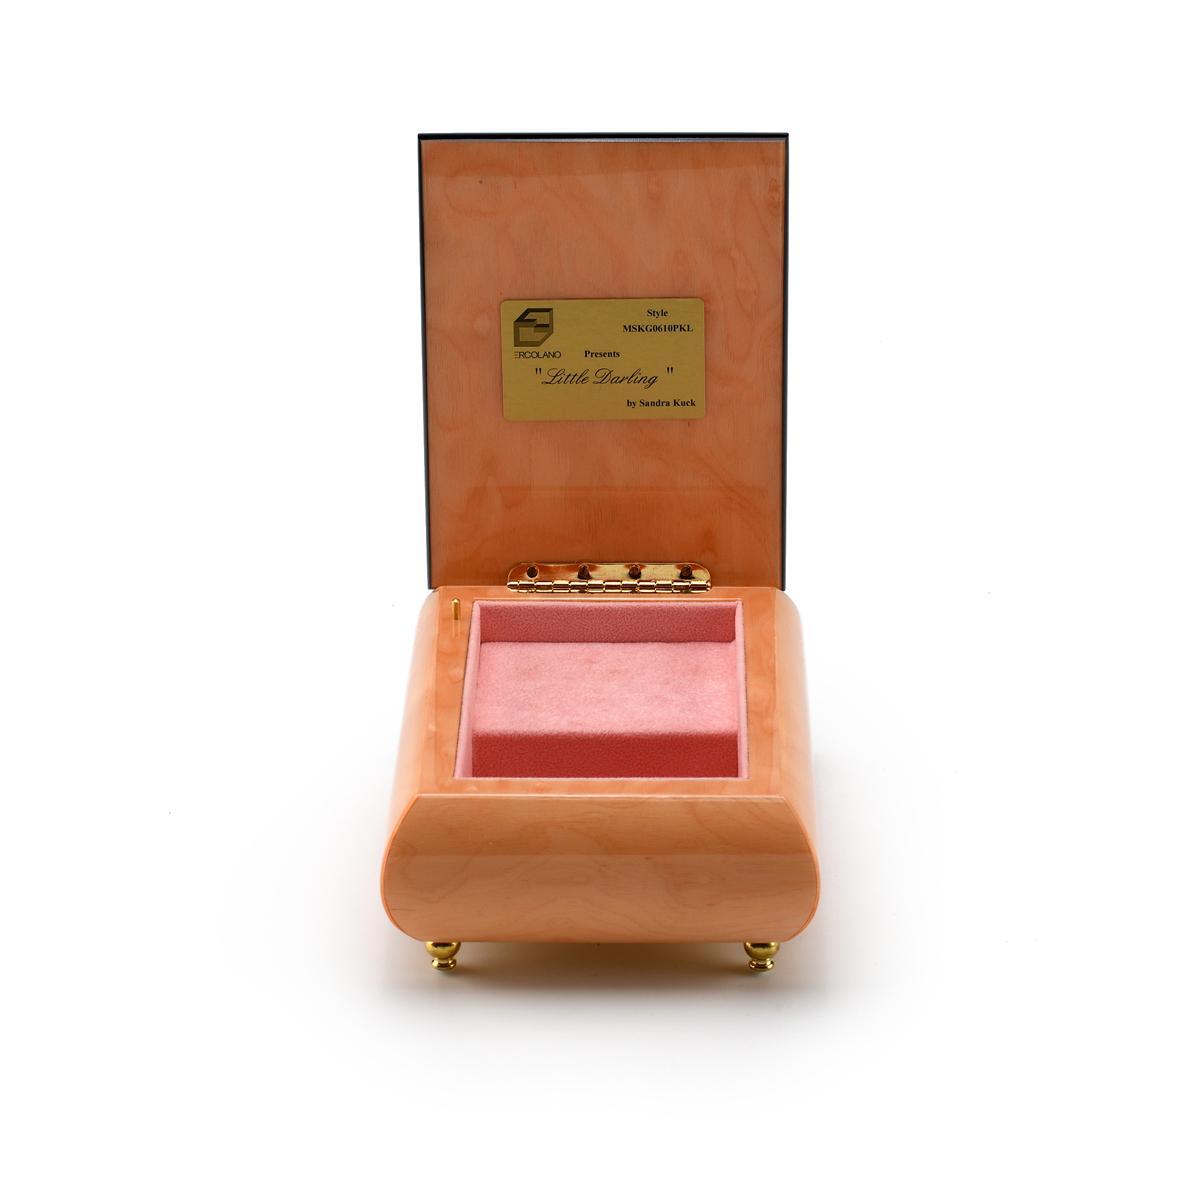 Handcrafted Ercolano Music Box Featuring Little Darling by Sandra Kuck